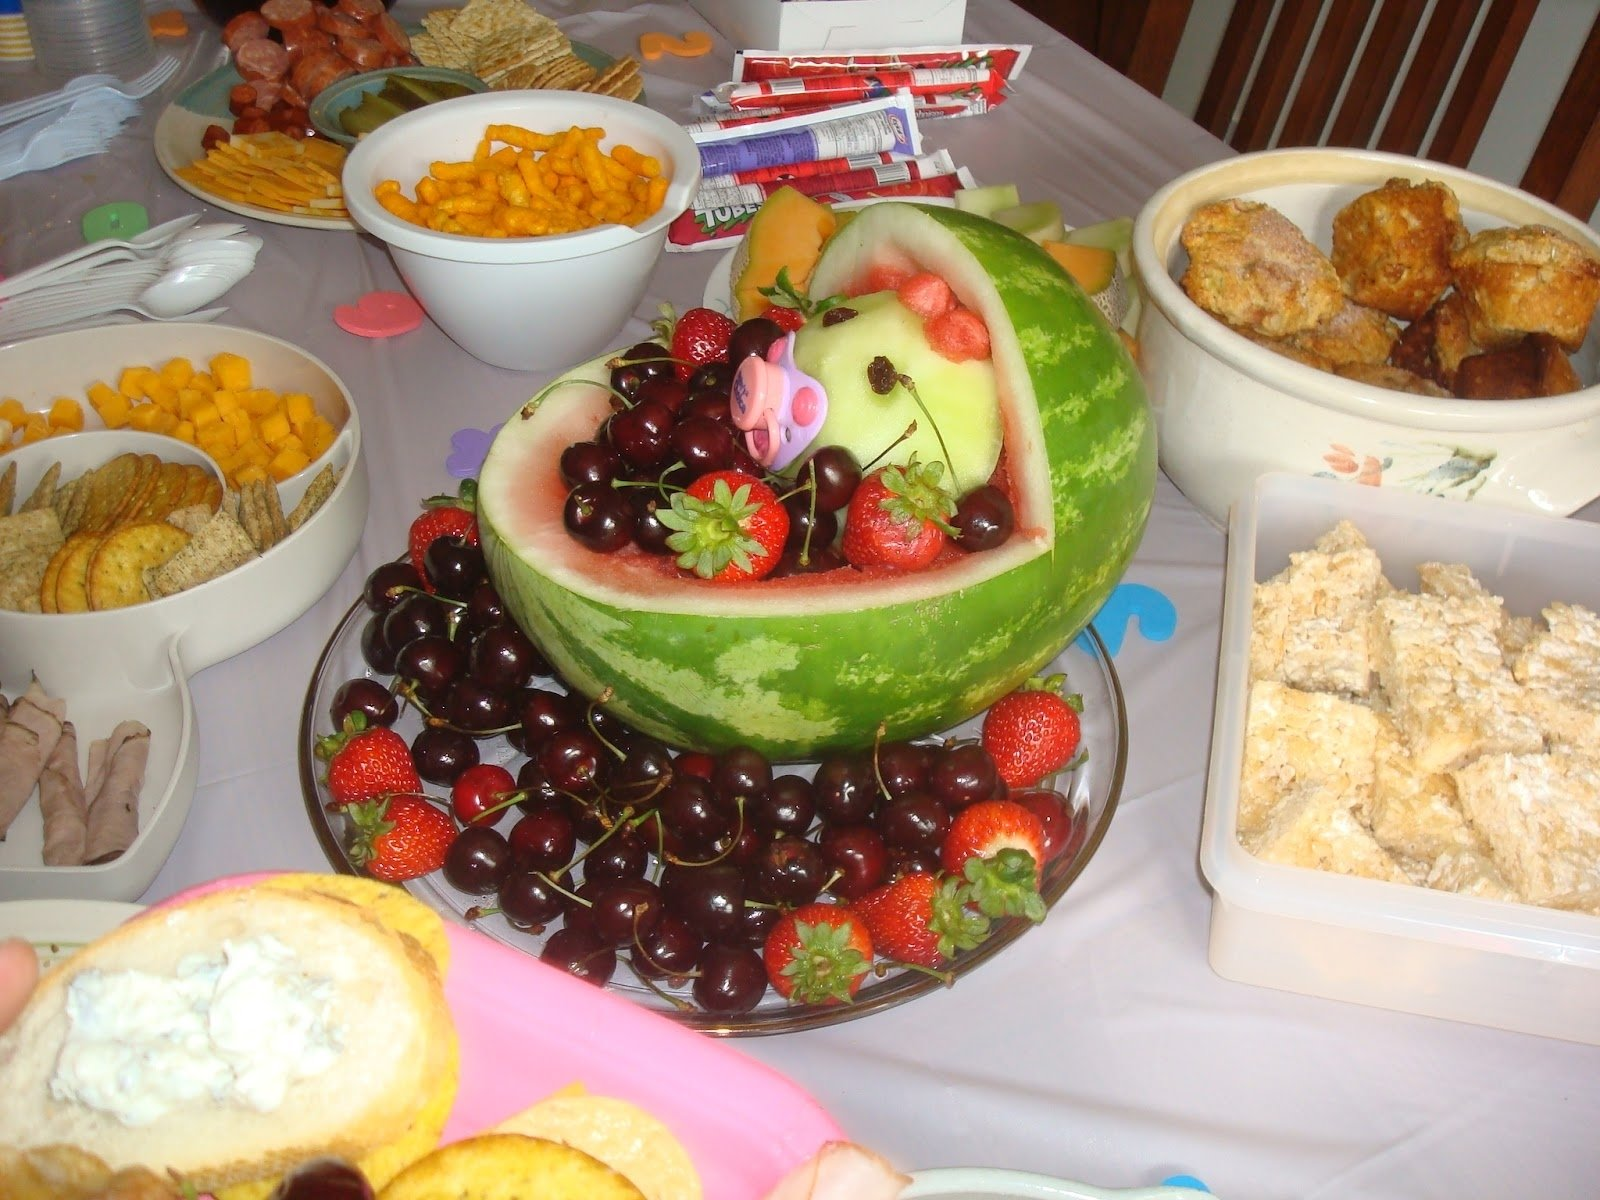 10 Perfect Menu Ideas For Baby Shower baby shower finger foods ideas omega center ideas for baby 2020